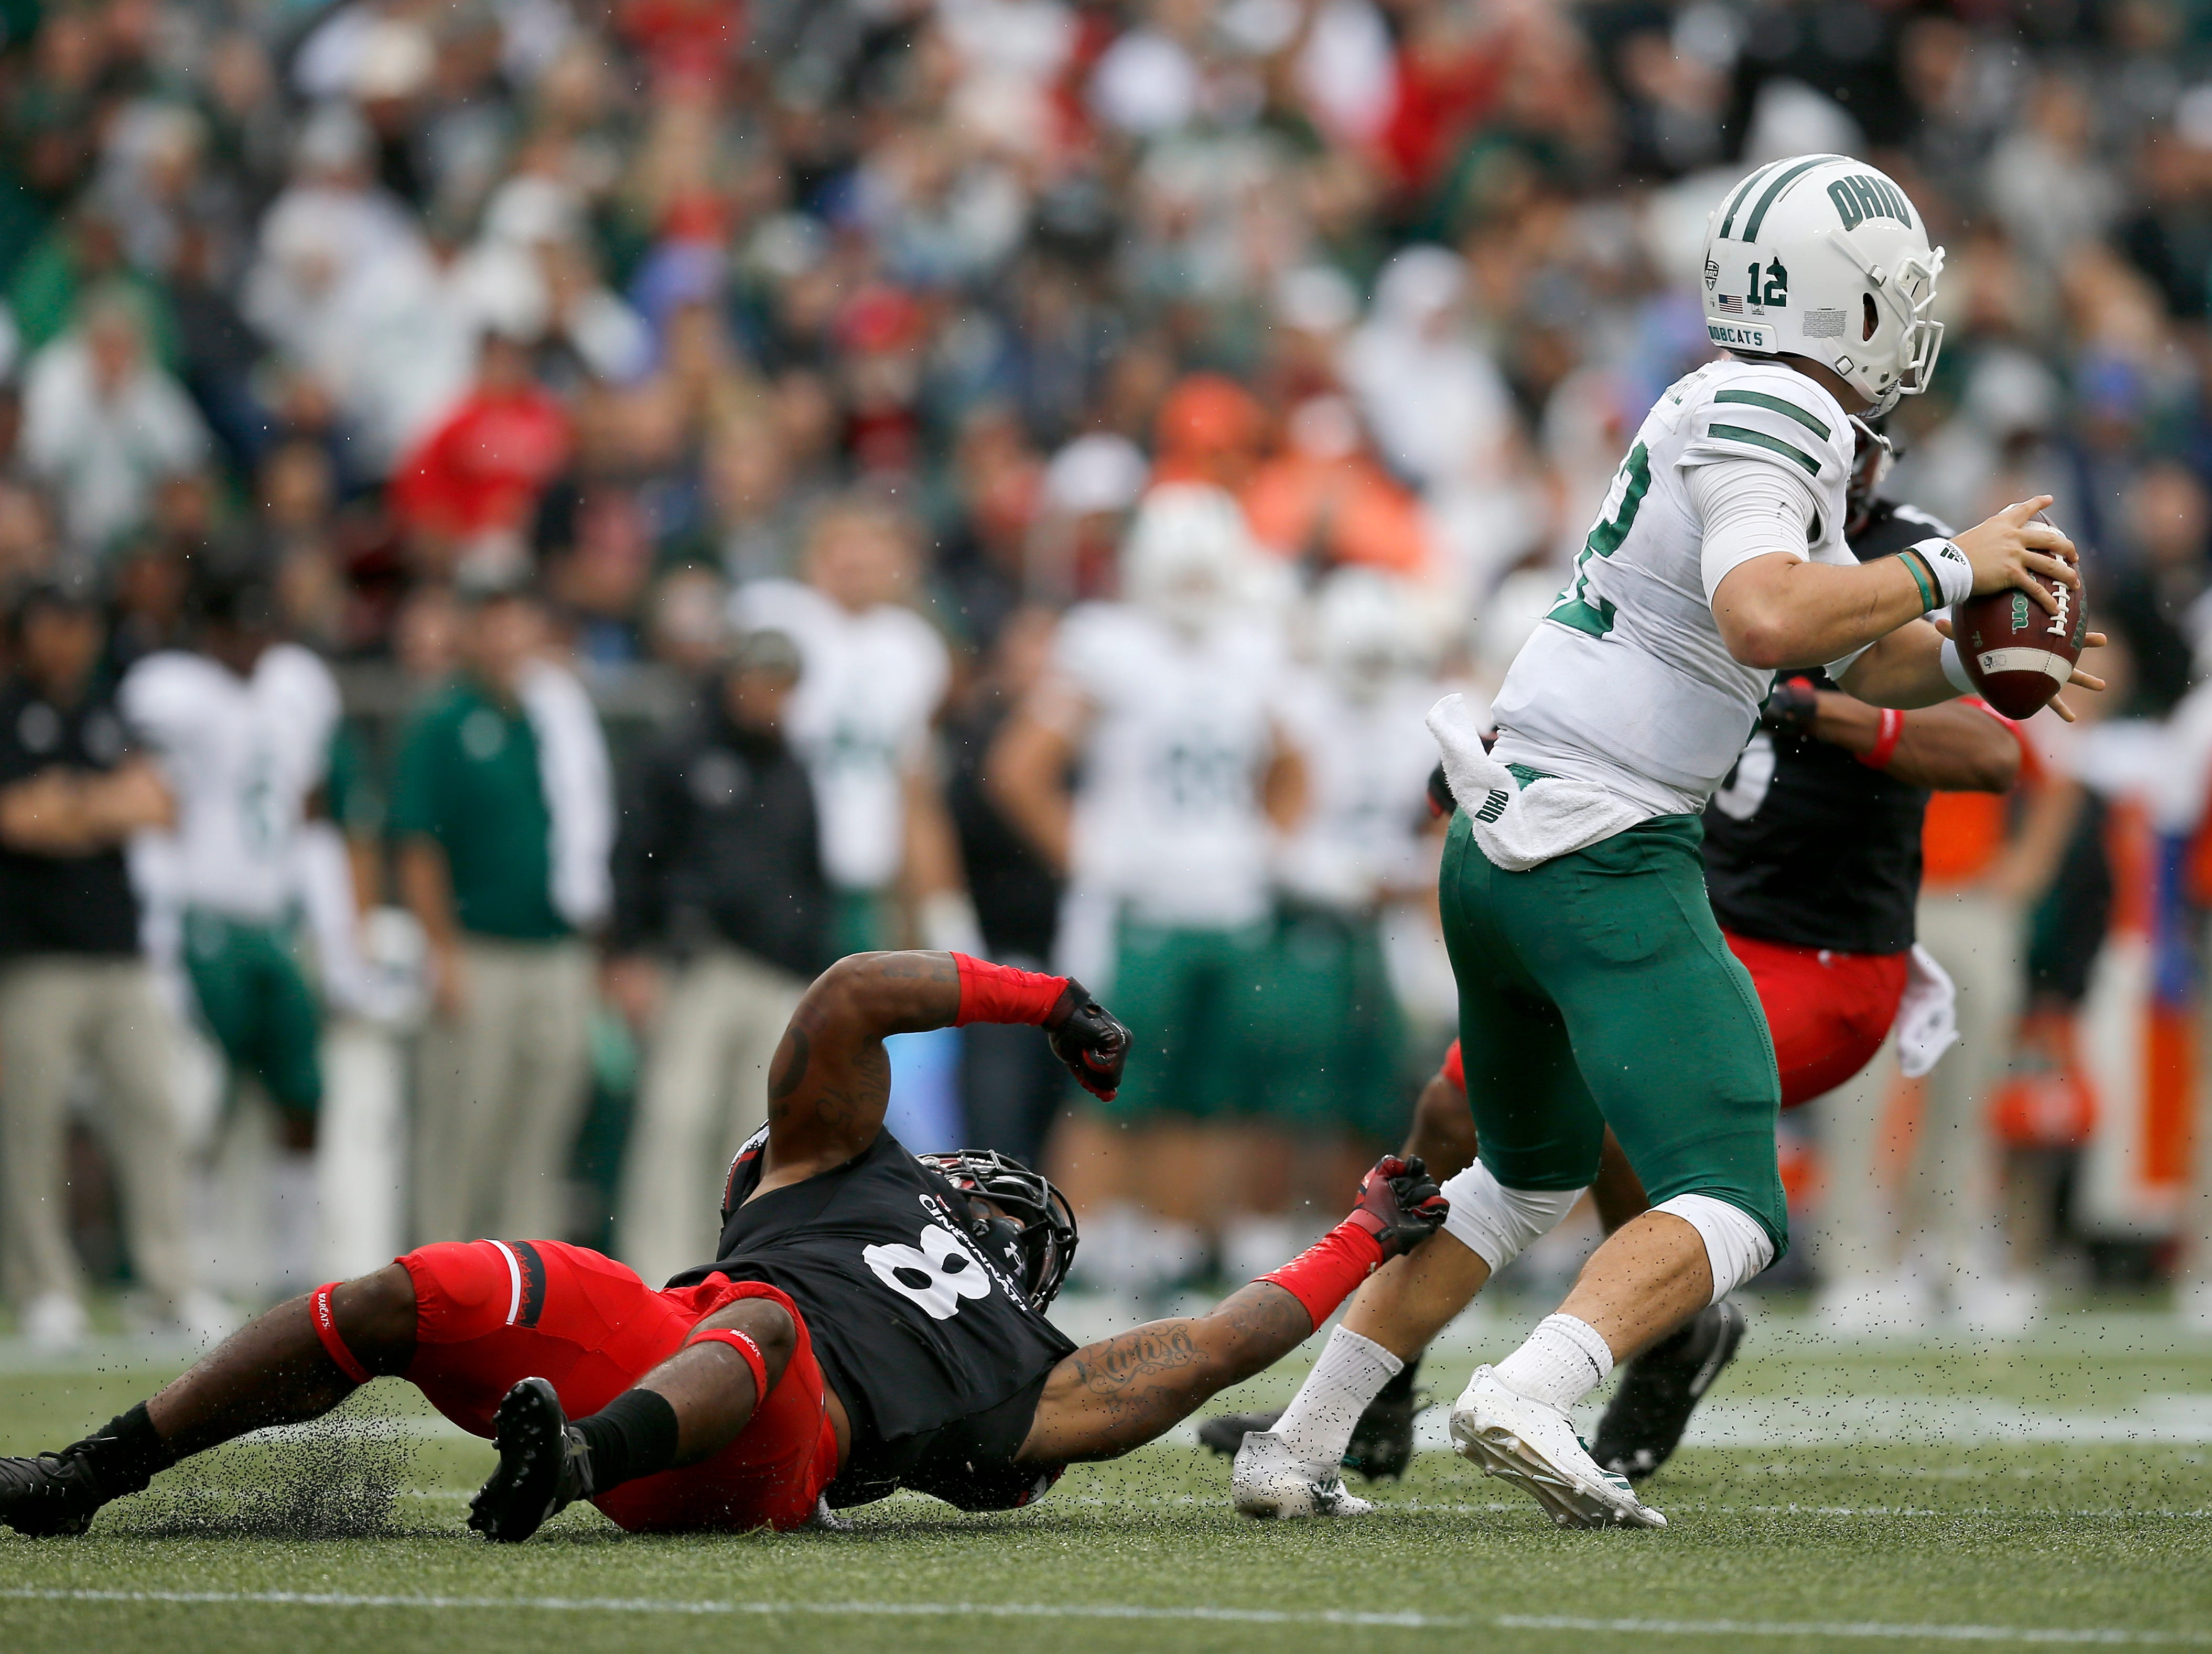 Ohio Bobcats quarterback Nathan Rourke (12) breaks a tackle from Cincinnati Bearcats linebacker Jarell White (8) in the second quarter of the NCAA football game between the Cincinnati Bearcats and the Ohio Bobcats at Nippert Stadium on the University of Cincinnati campus in Cincinnati on Saturday, Sept. 22, 2018. The Bobcats led 24-7 at halftime.